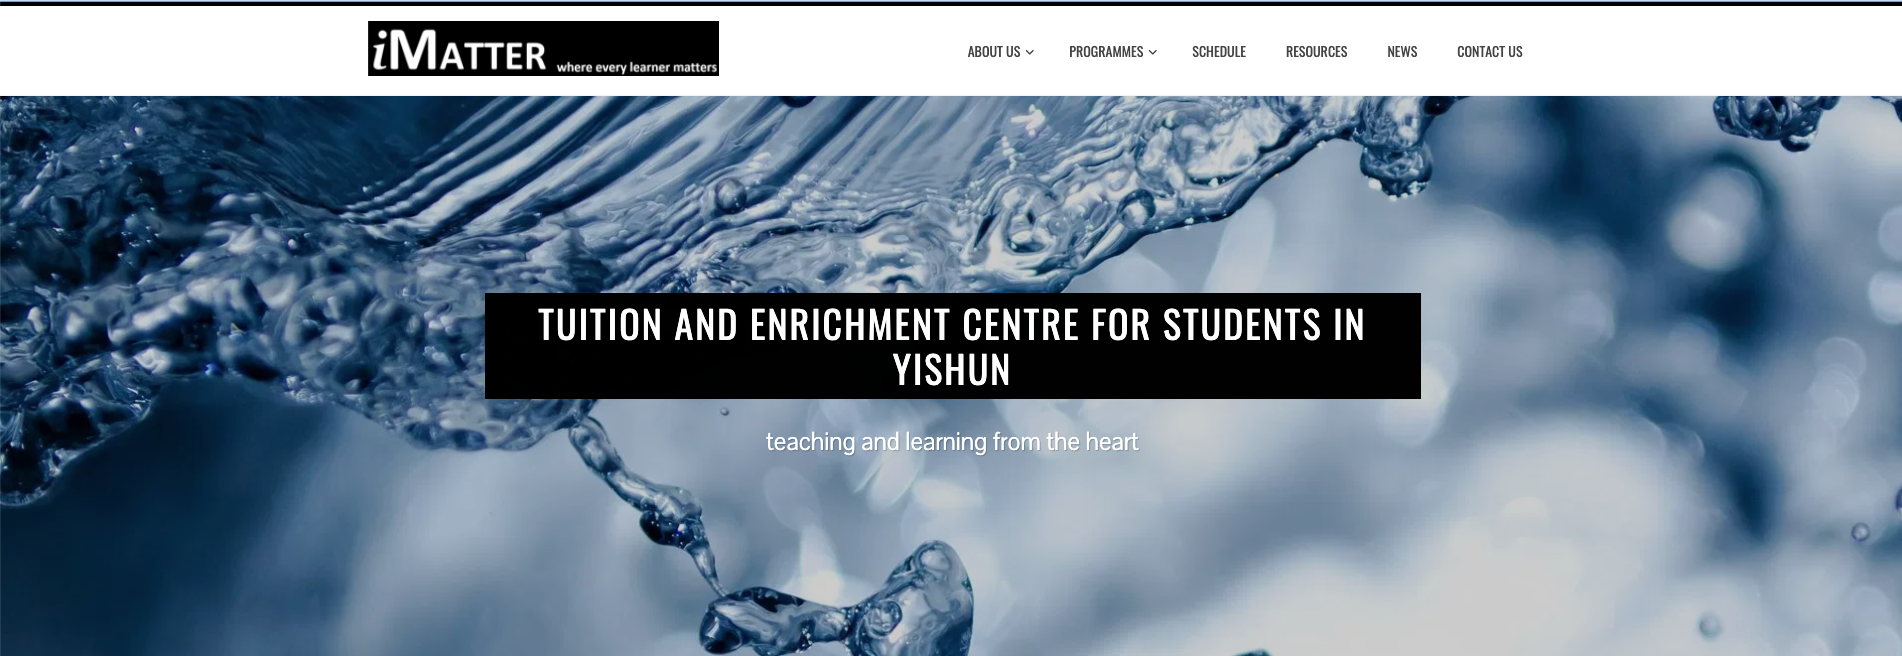 iMatter Learning Centre GP Tuition